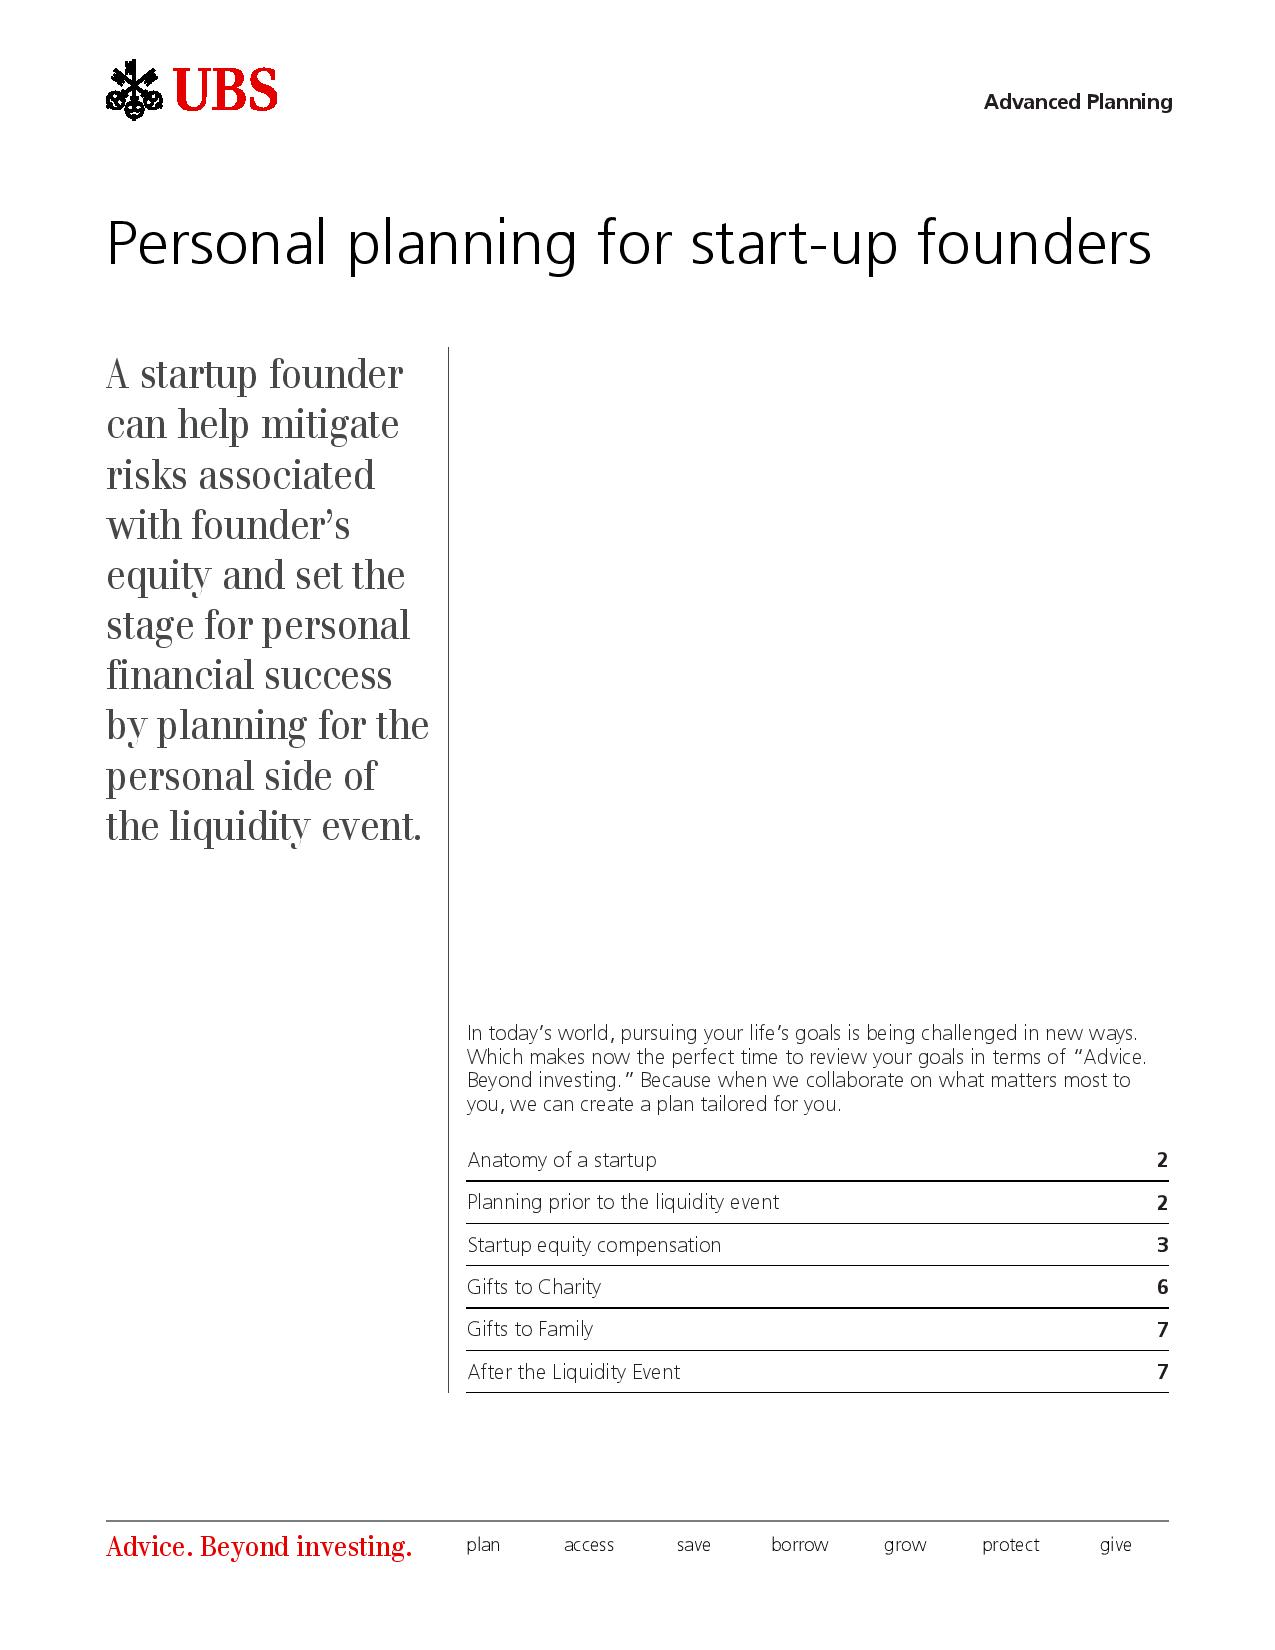 Personal Planning <br> for Start-Up <br> Founders